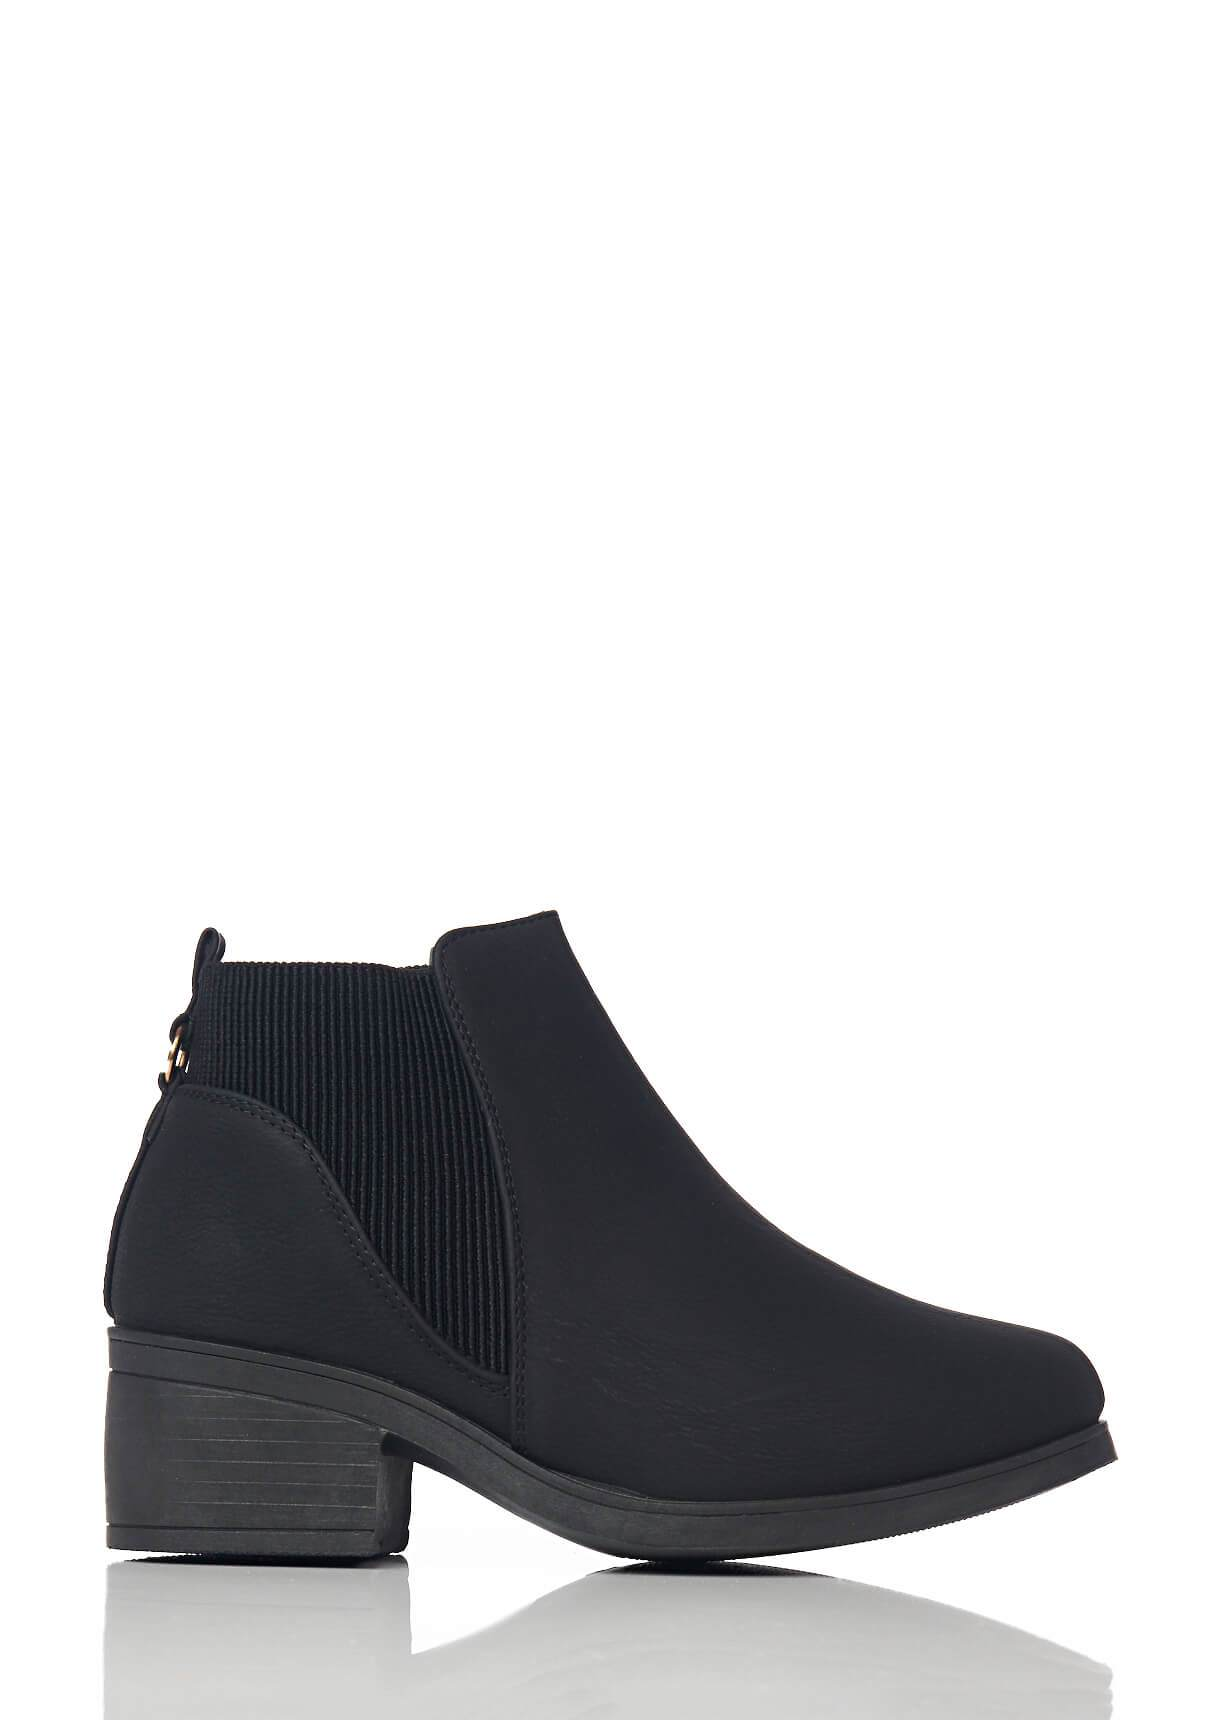 Wide Fit Black Low Heel Elasticated Side Boots